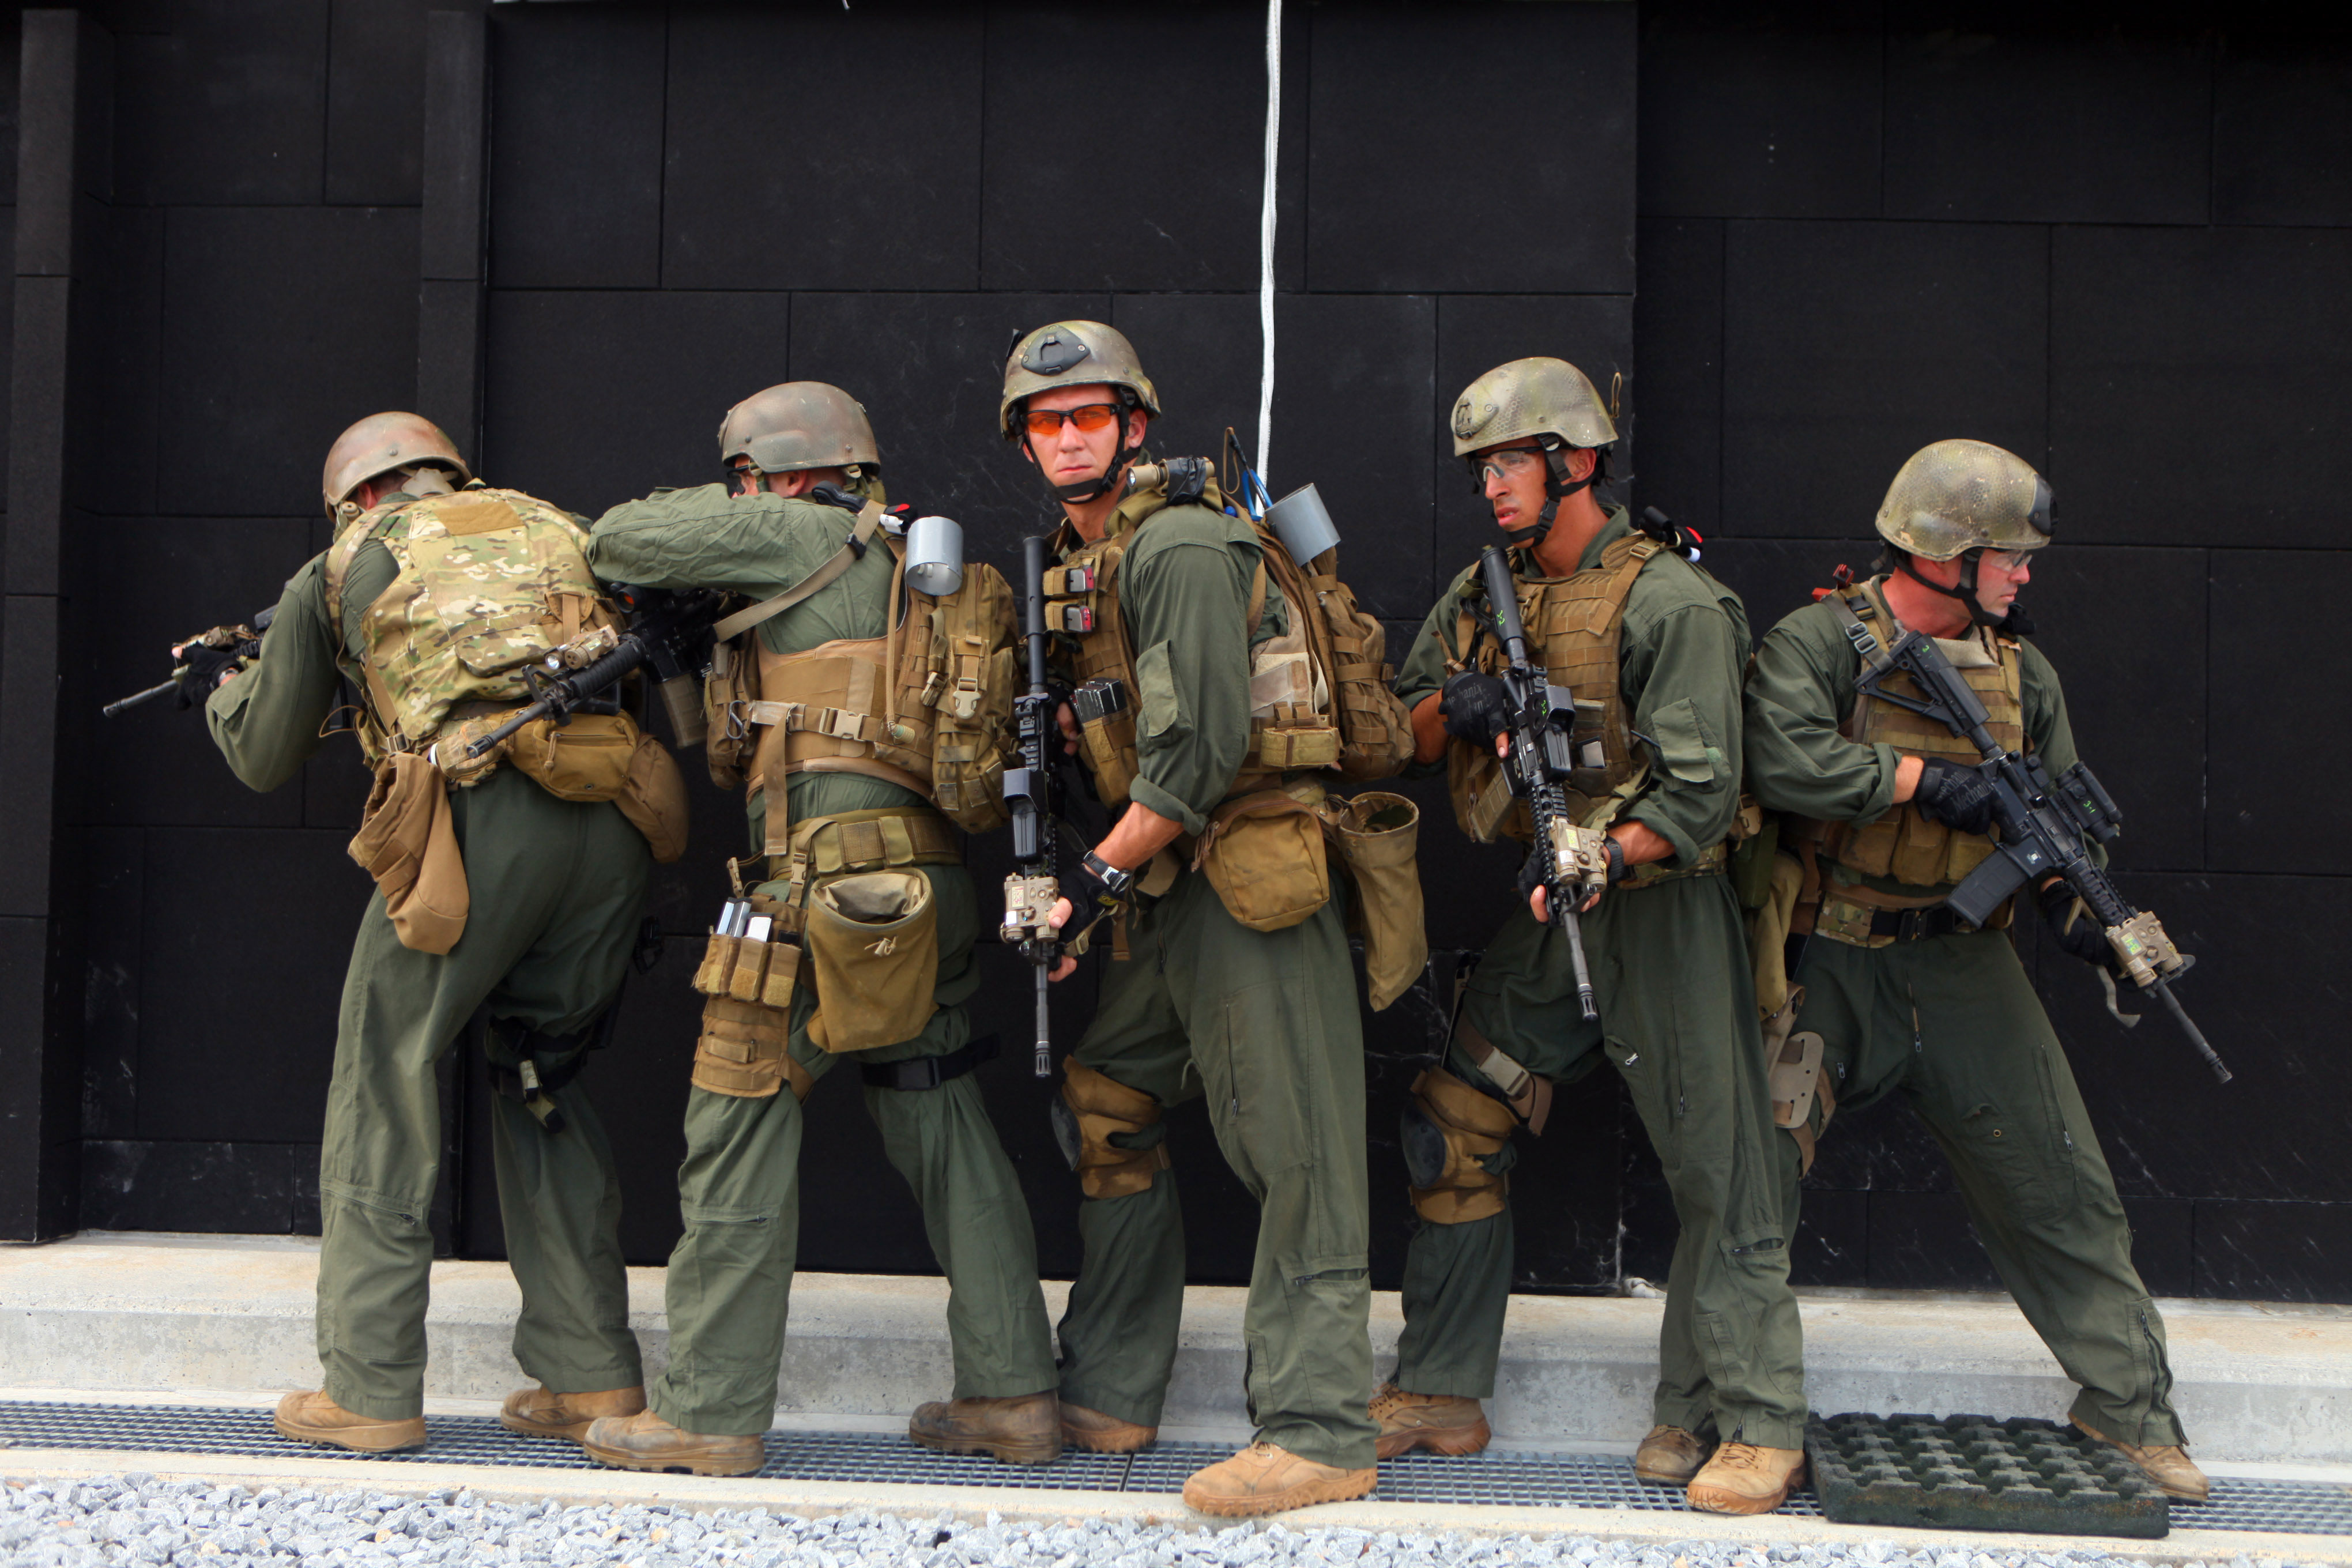 Photo : Force Recon Marines with M4a1